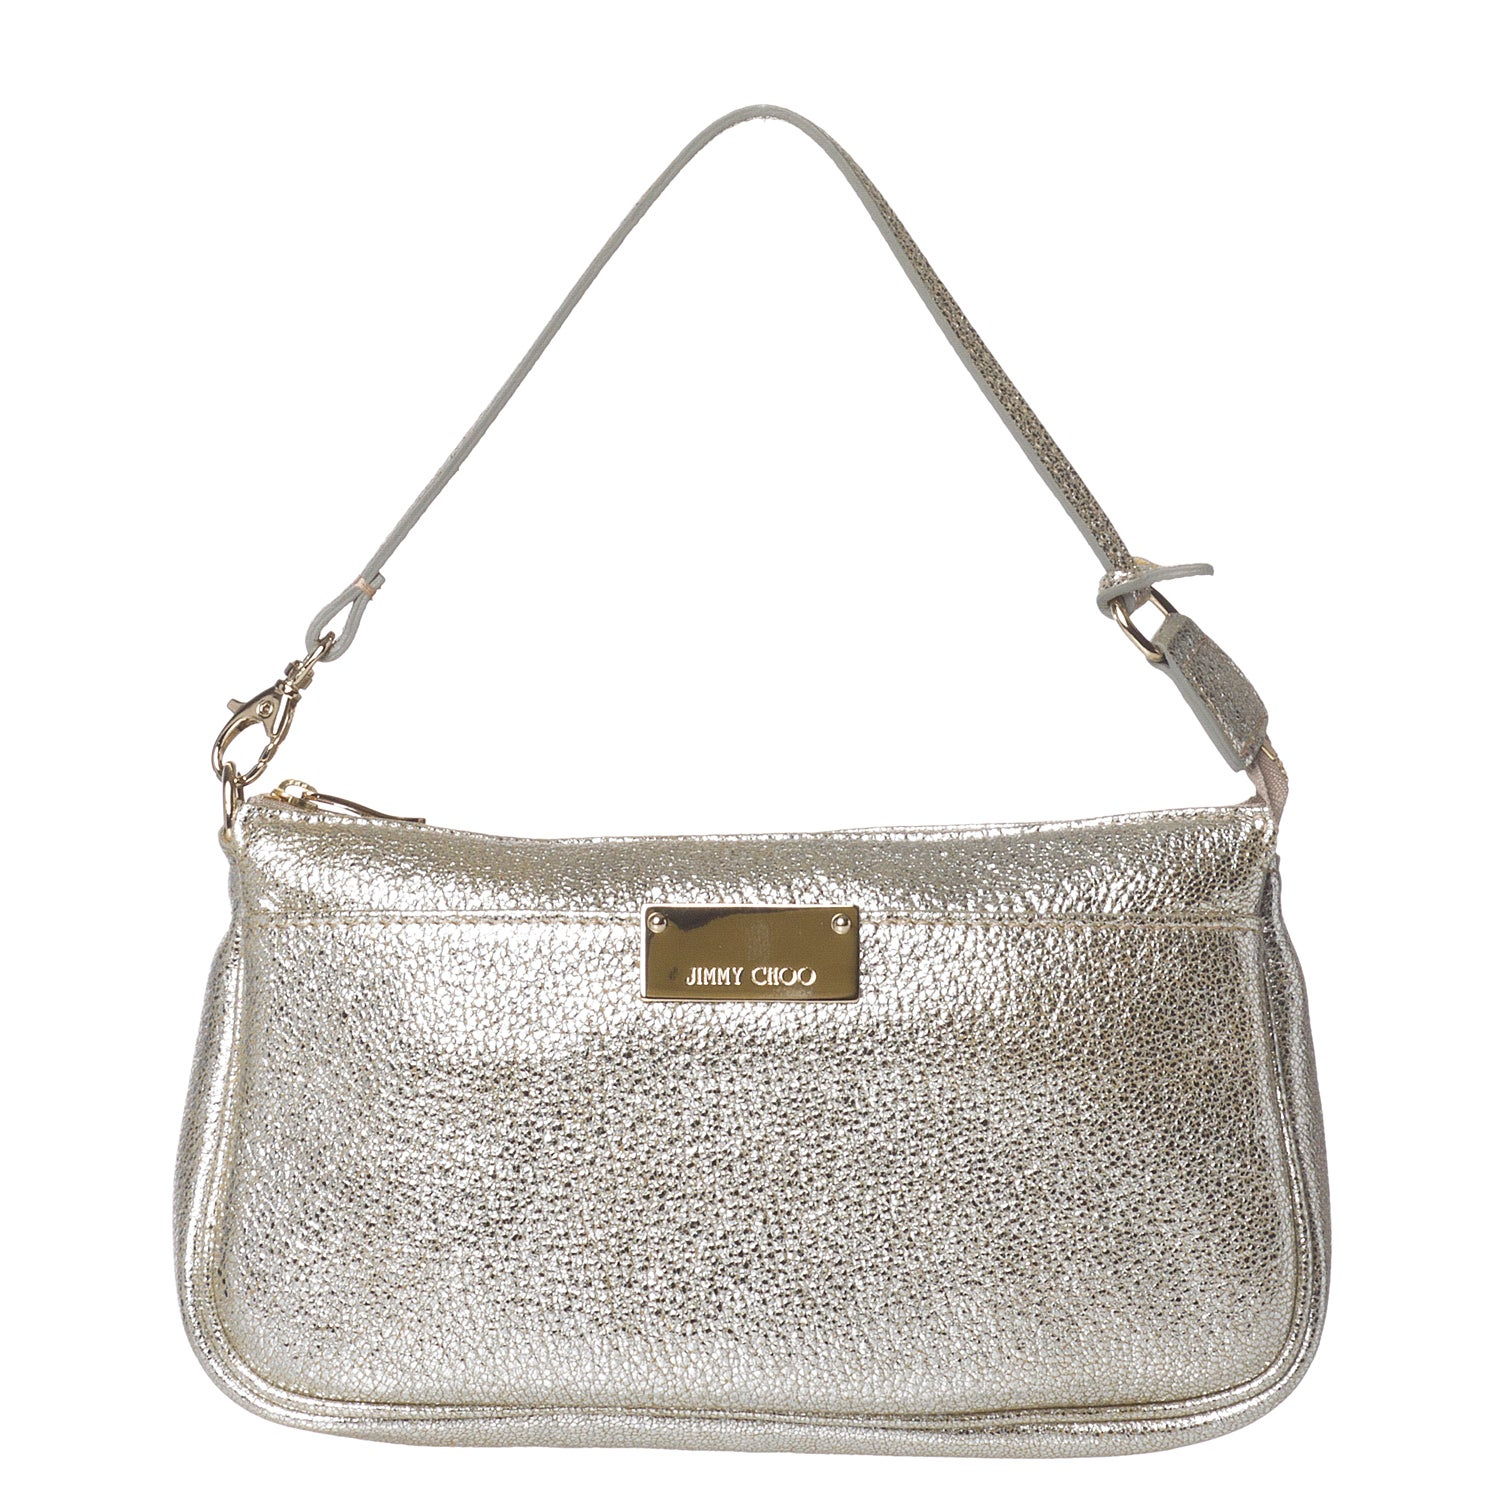 Jimmy Choo '247 RELLA GLE' Metallic Mini Bag